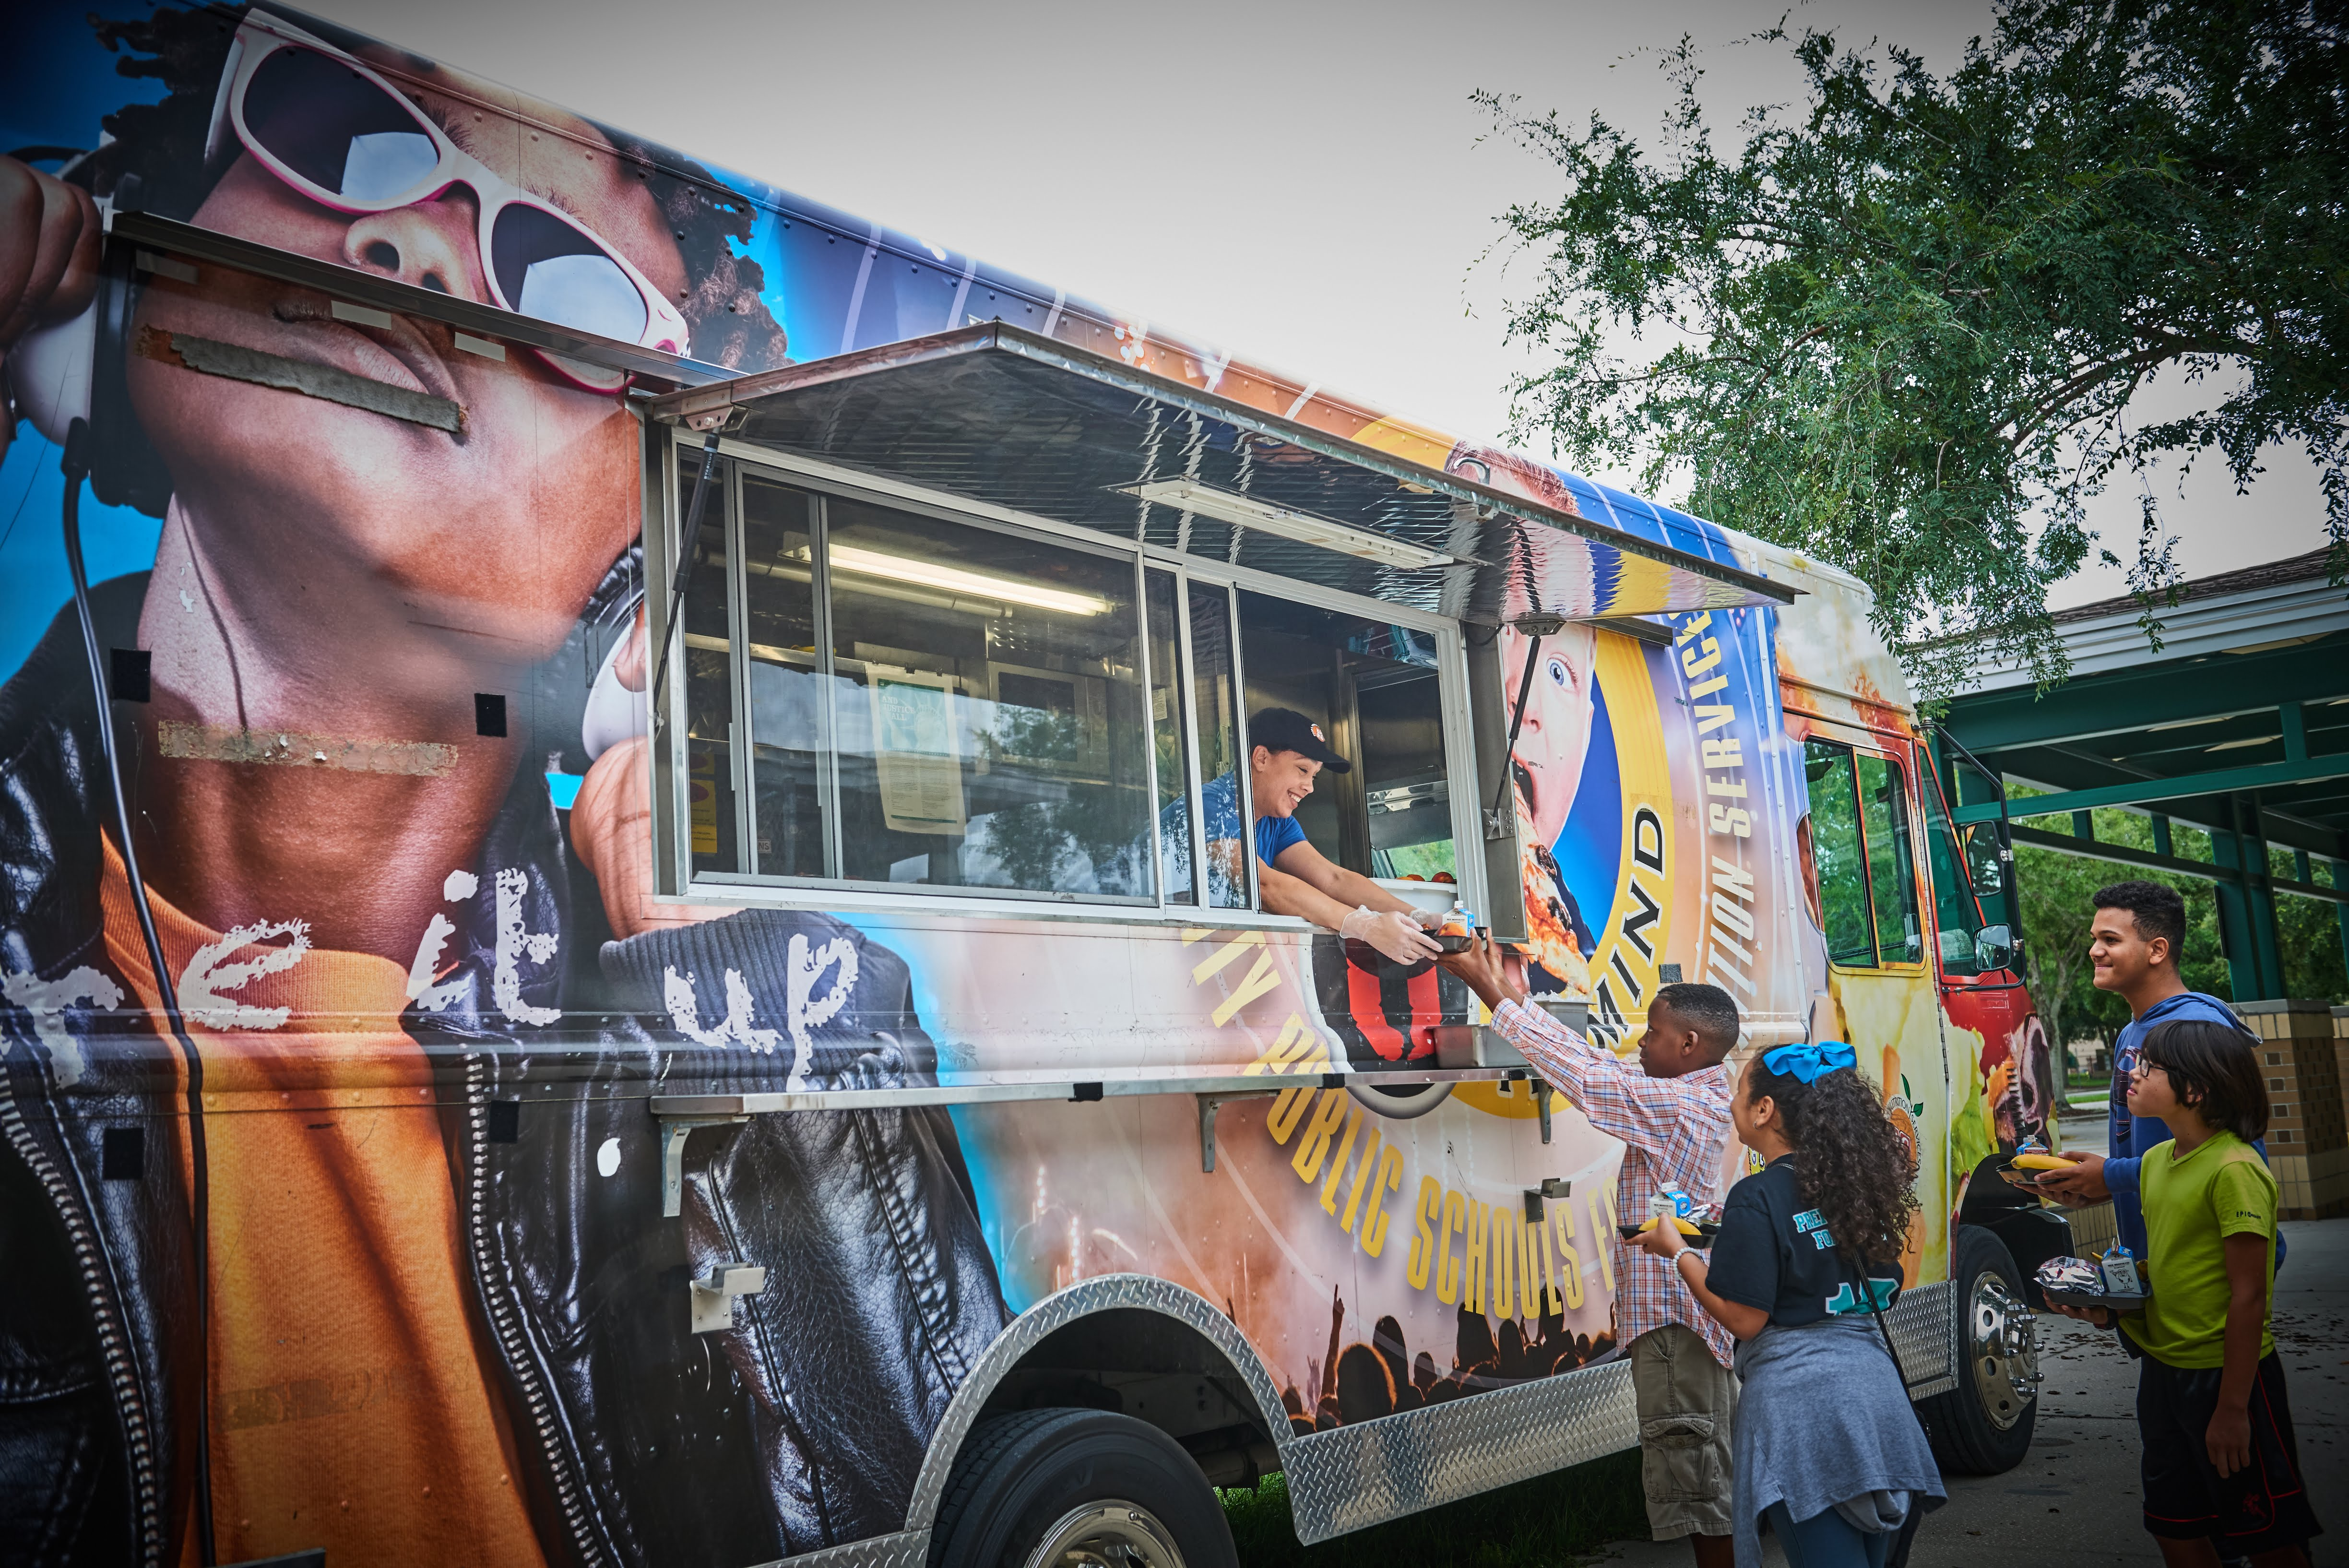 Students at Meadow Woods Middle School in Orlando buy school lunch from a food truck that visits regularly. The truck represents just one strategy Orange County Public Schools has employed to liven up lunch.